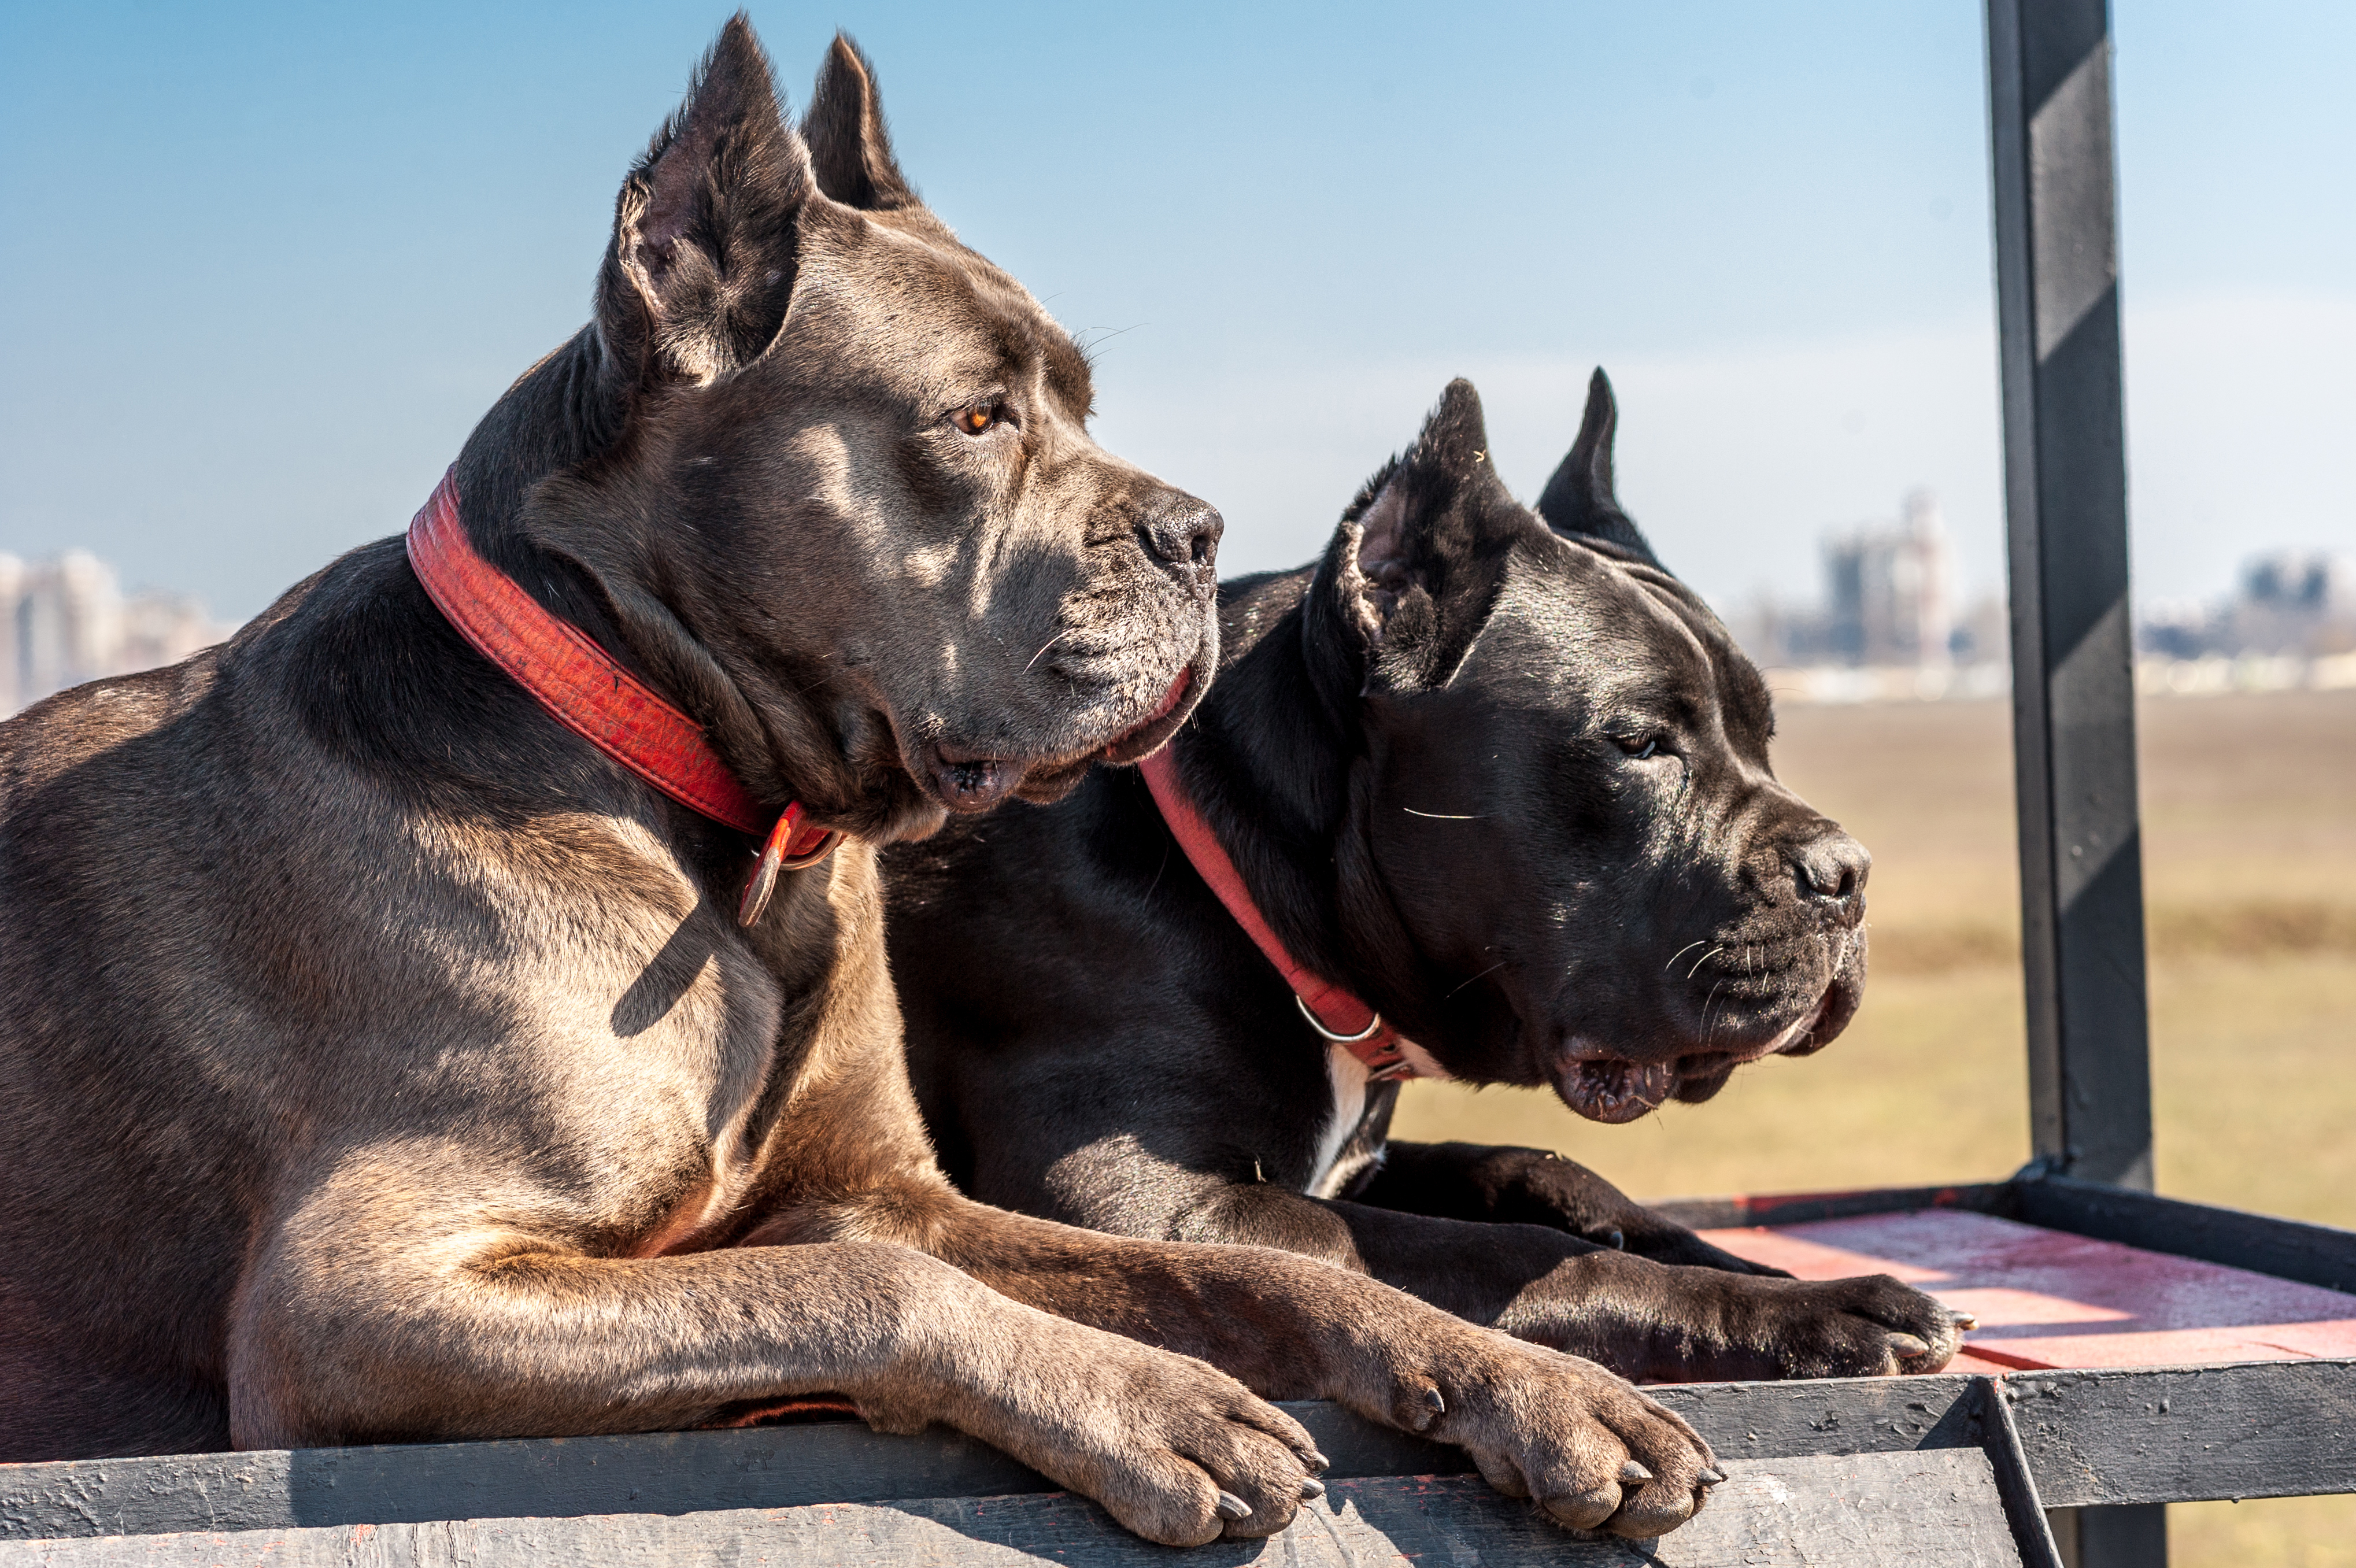 Two cane-corso dogs lie on the field for training, obedience